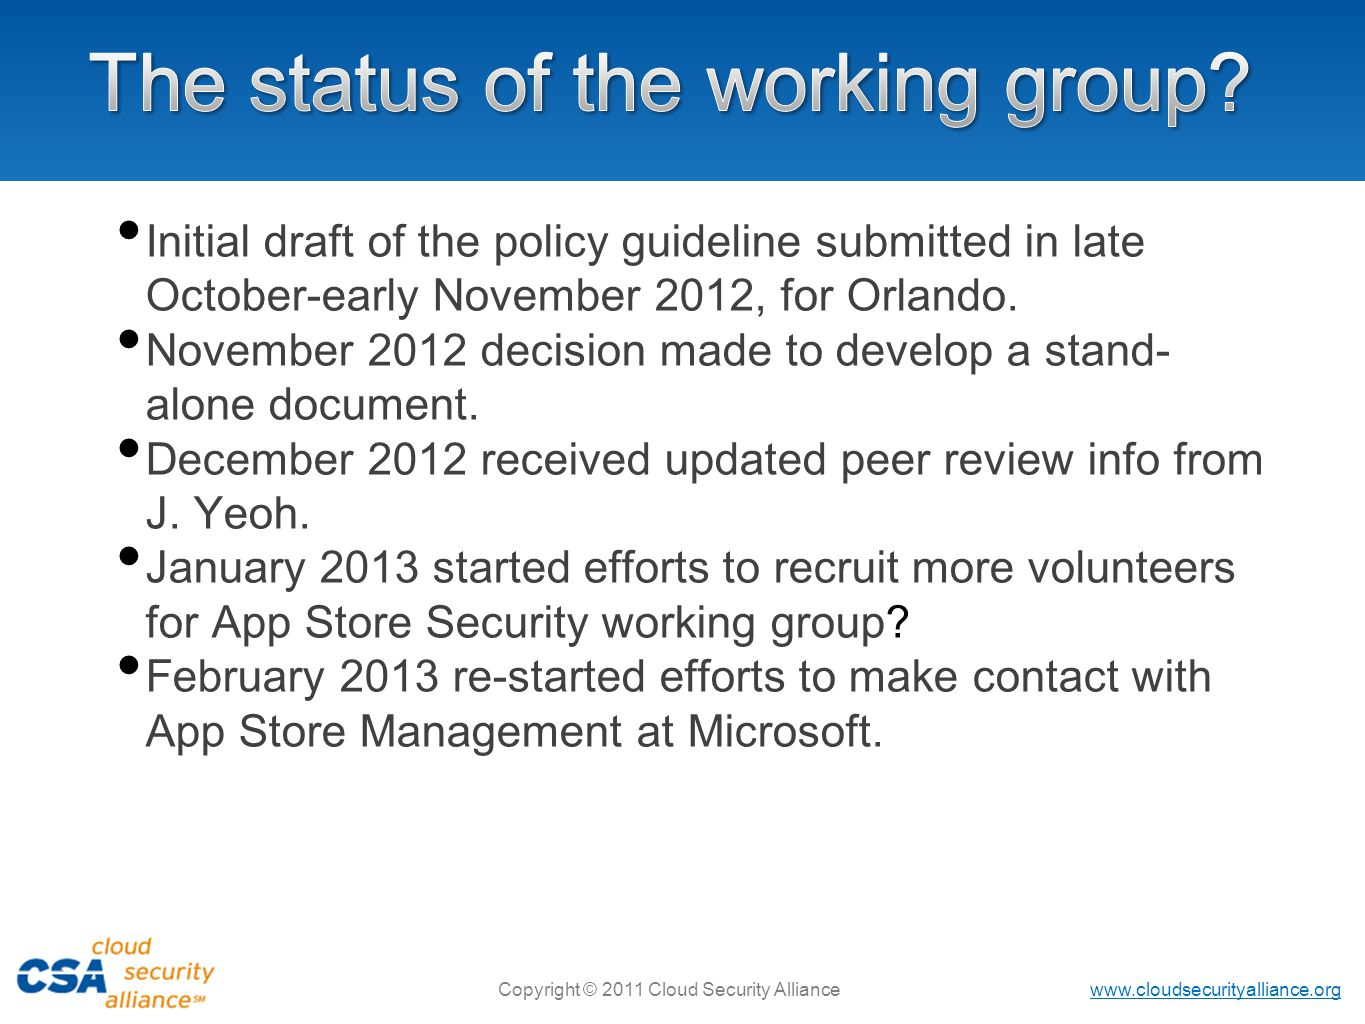 The status of the working group